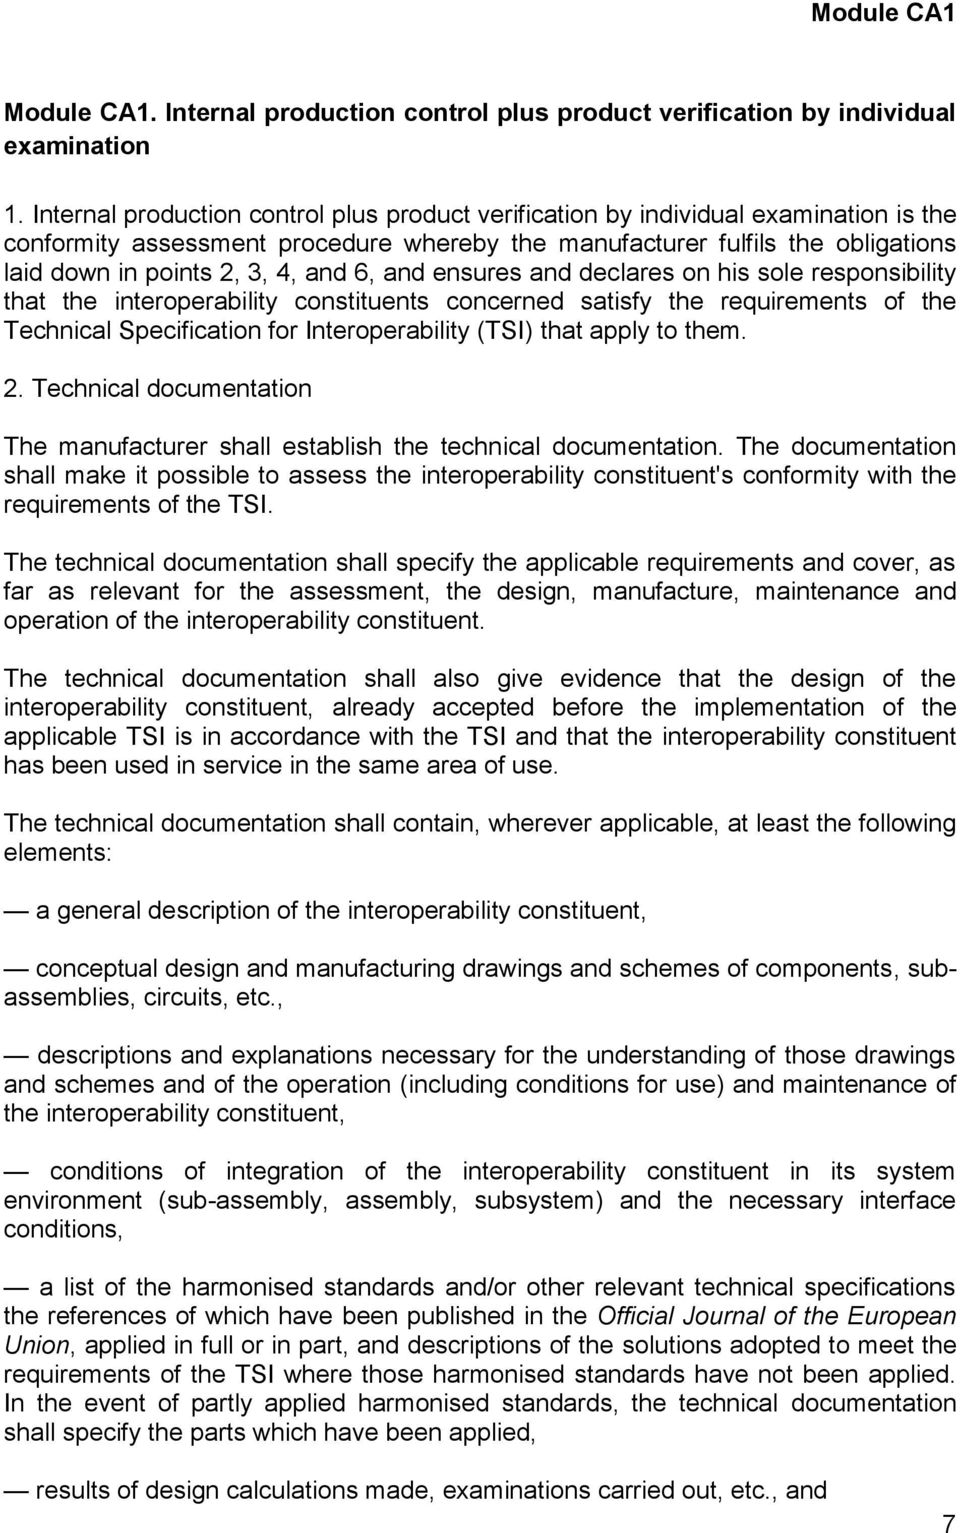 and 6, and ensures and declares on his sole responsibility that the interoperability constituents concerned satisfy the requirements of the Technical Specification for Interoperability (TSI) that